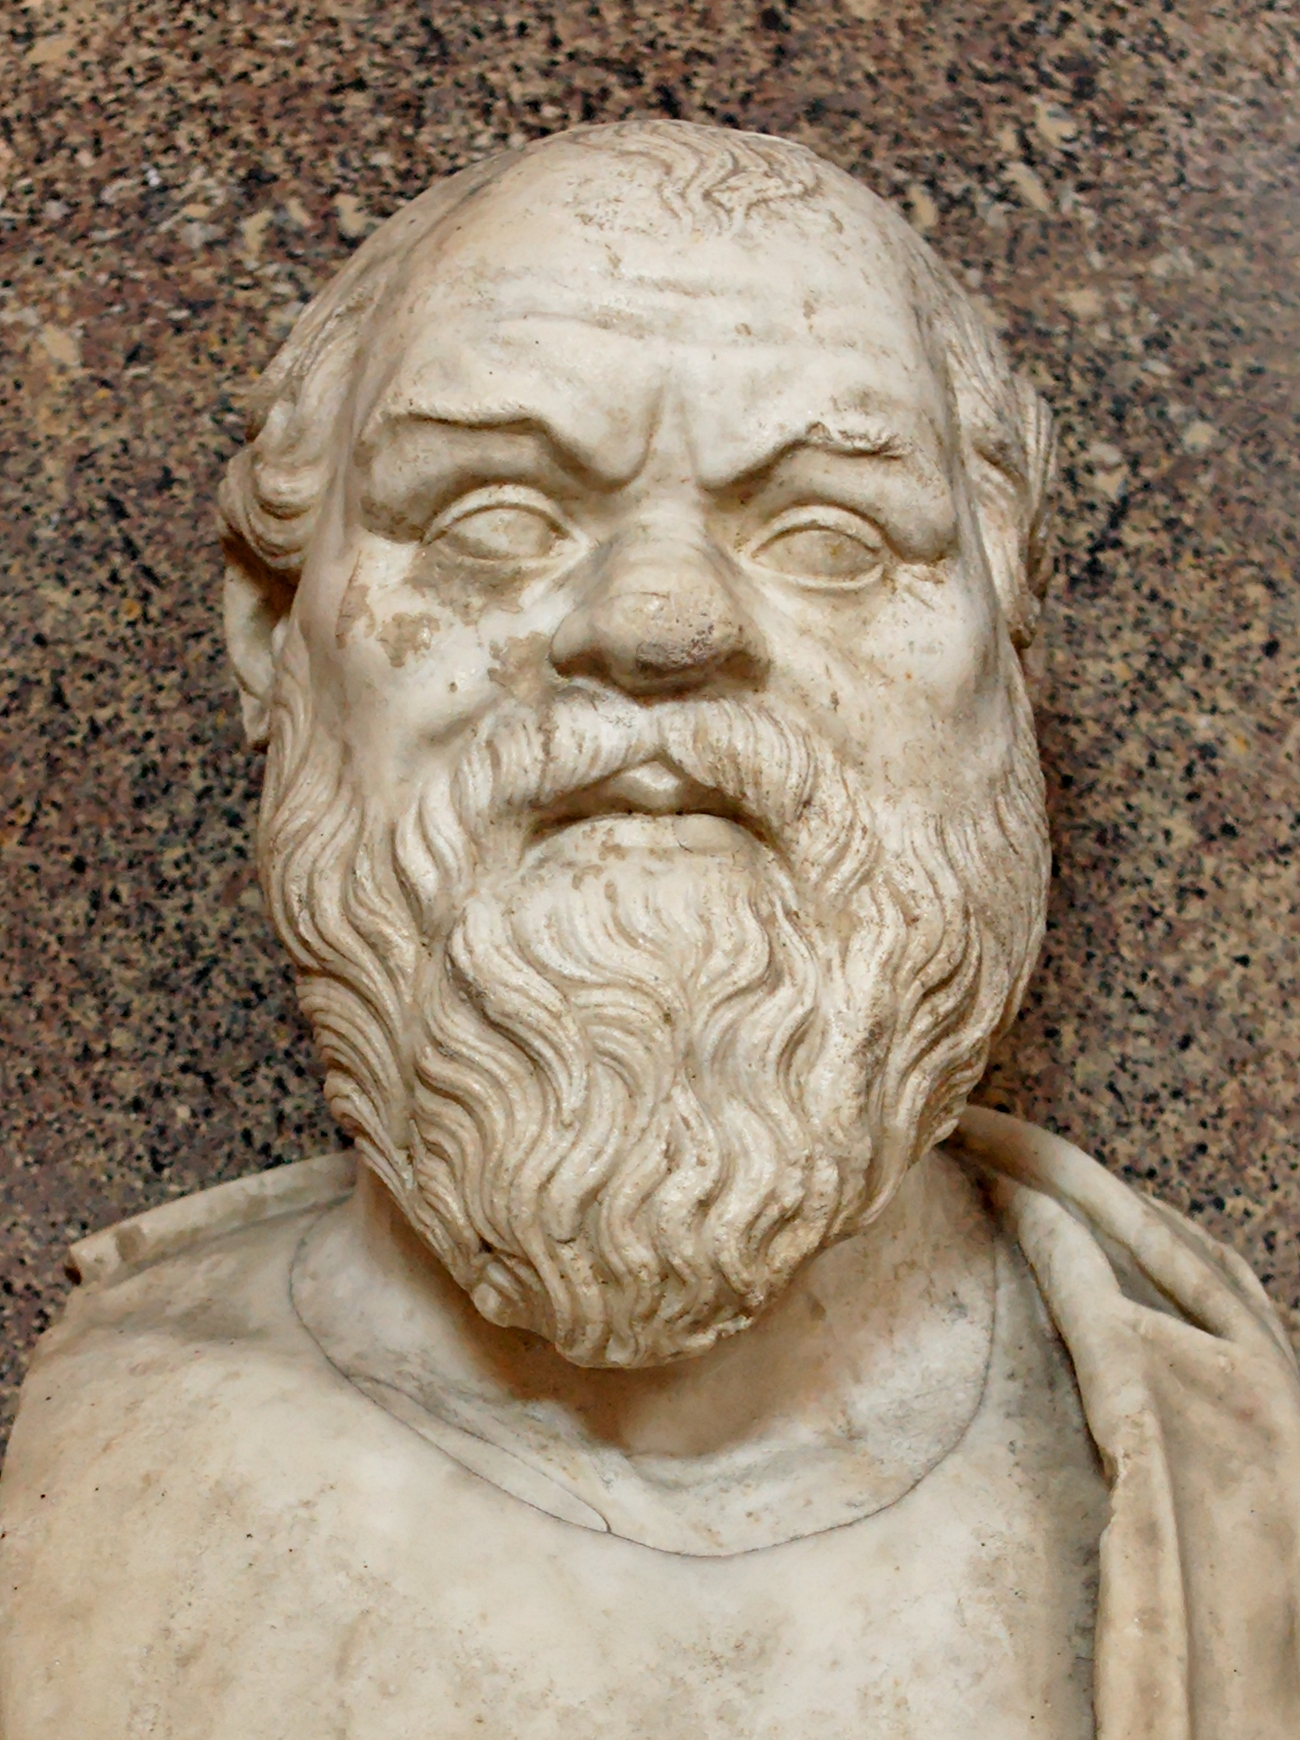 The Big Three of Greek Philosophy: Socrates, Plato, and Aristotle.